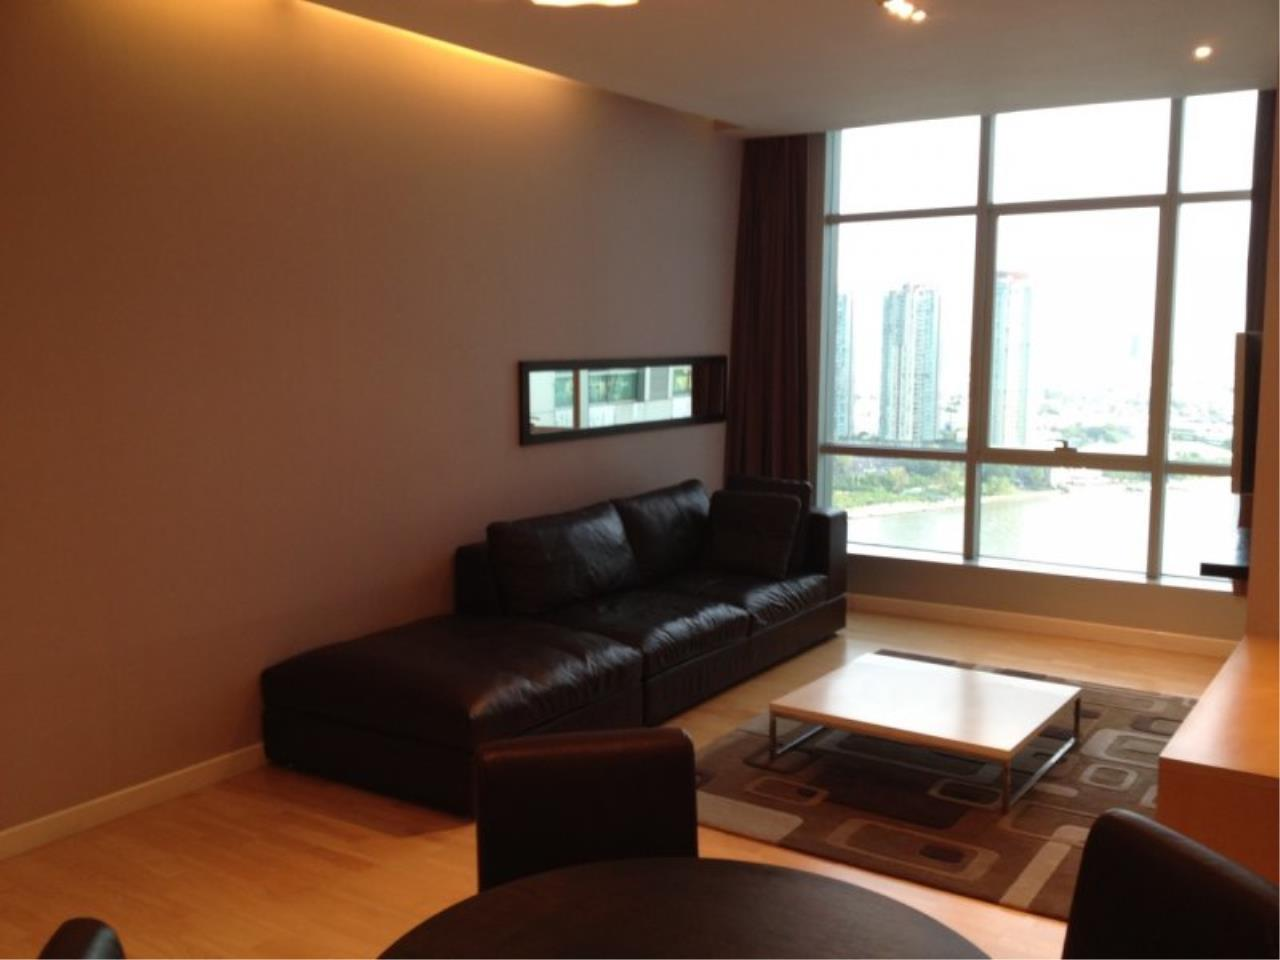 Piri Property Agency's 1 Bedroom in the Baan Sathorn Chaophraya building for rent on high floor 1